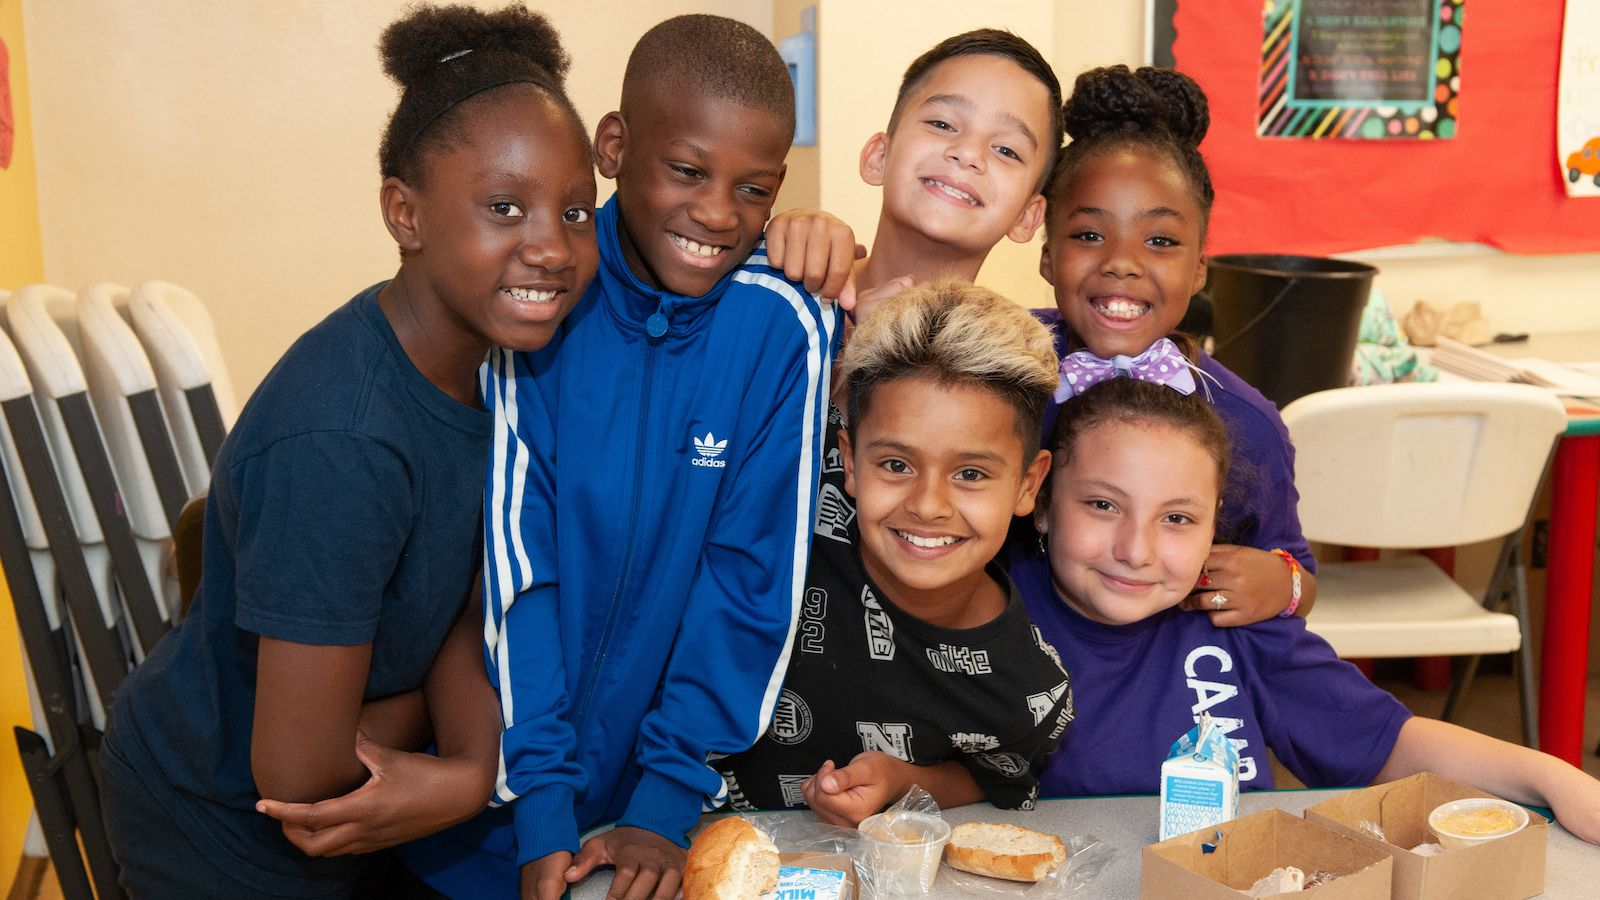 In 2000, the North Texas Food Bank received its first funding from Crystal Charity with a $372,000 grant in support of its Kids Café.